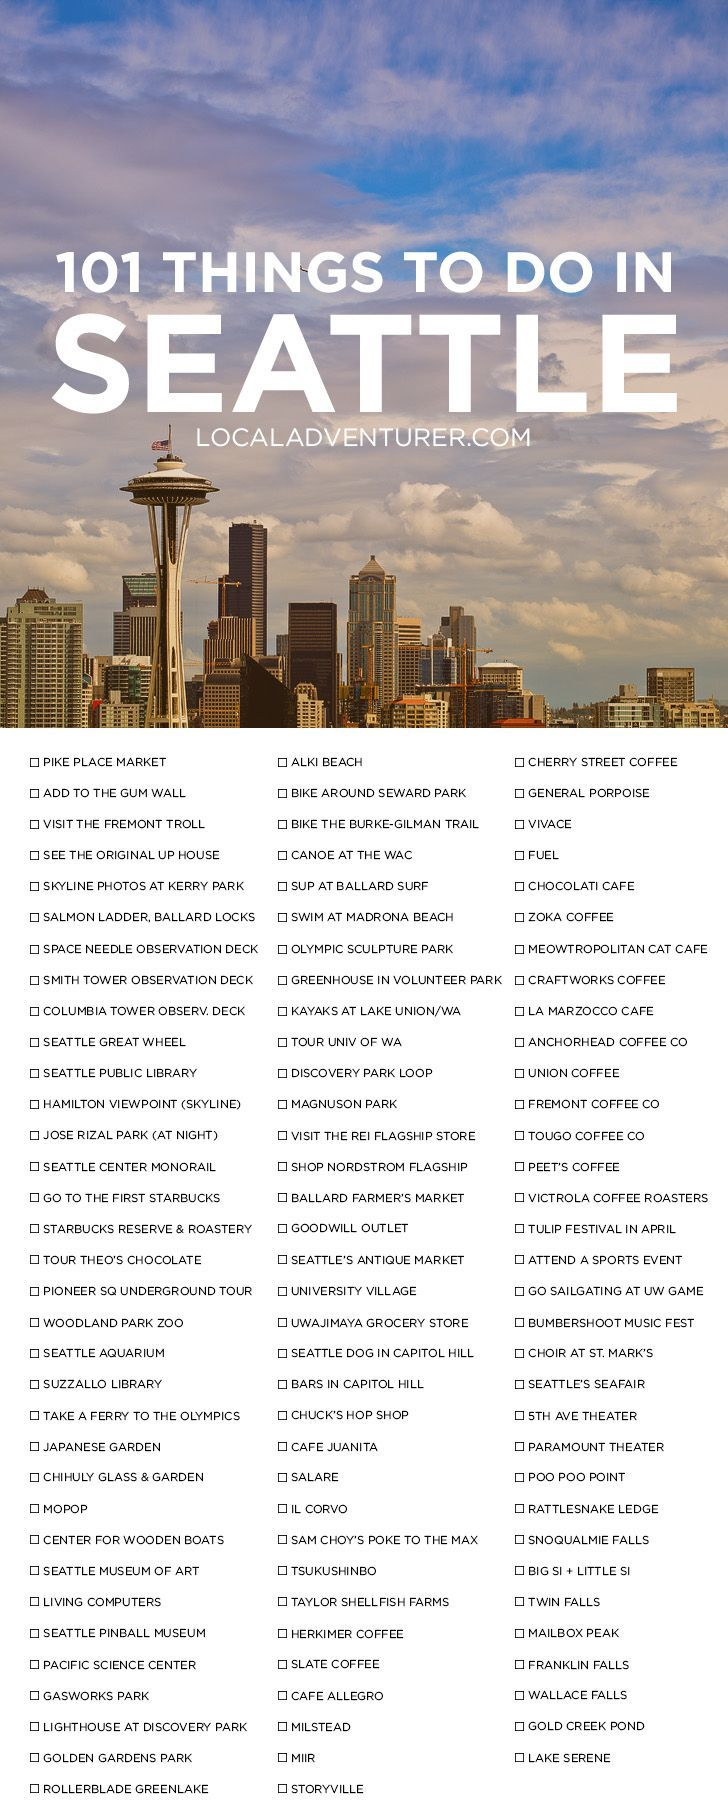 101 Things to Do in Seattle Washington { click through to get the printable version } - the Ultimate Seattle Bucket List - from the popular spots everyone has to do at least once to the spots a little more off the beaten path. // :